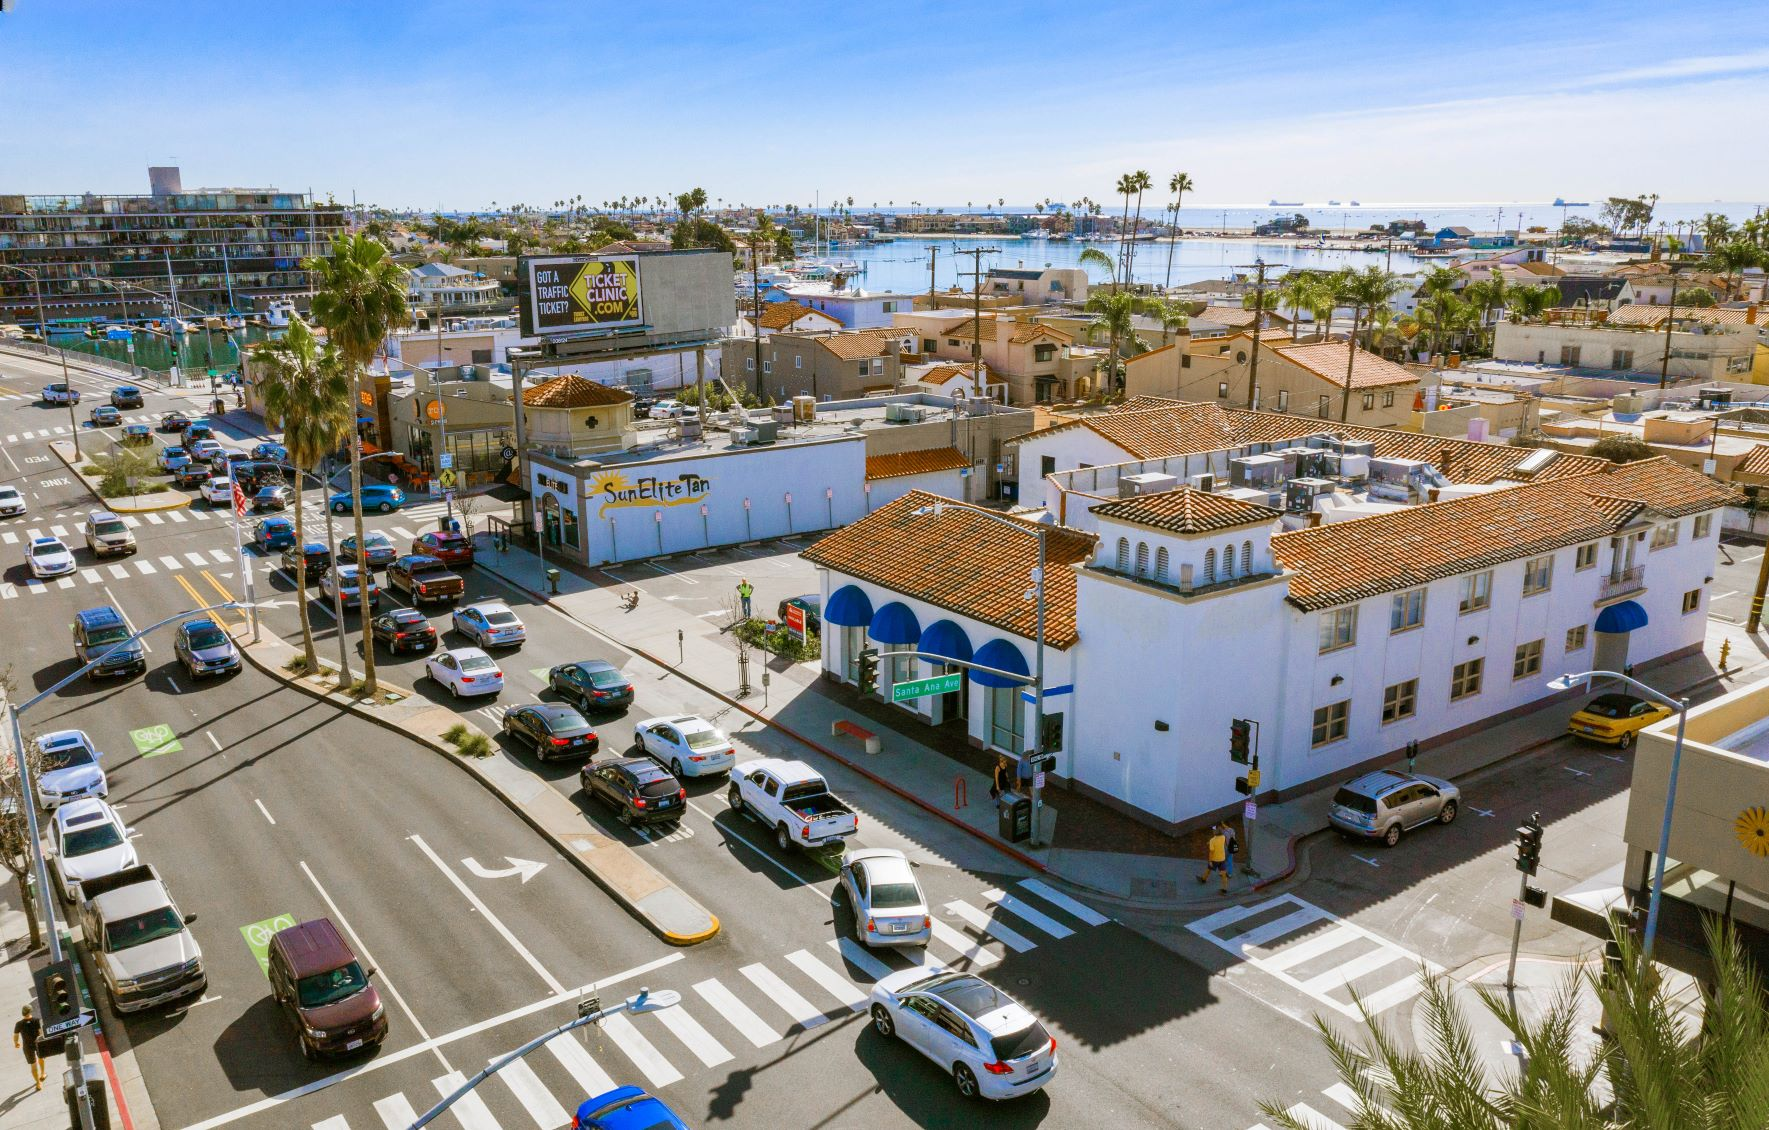 Hanley Investment Group Arranges Sale of Trophy 9,000 SF Multi-Tenant Retail Property in Belmont Shore, Long Beach for $5 Million